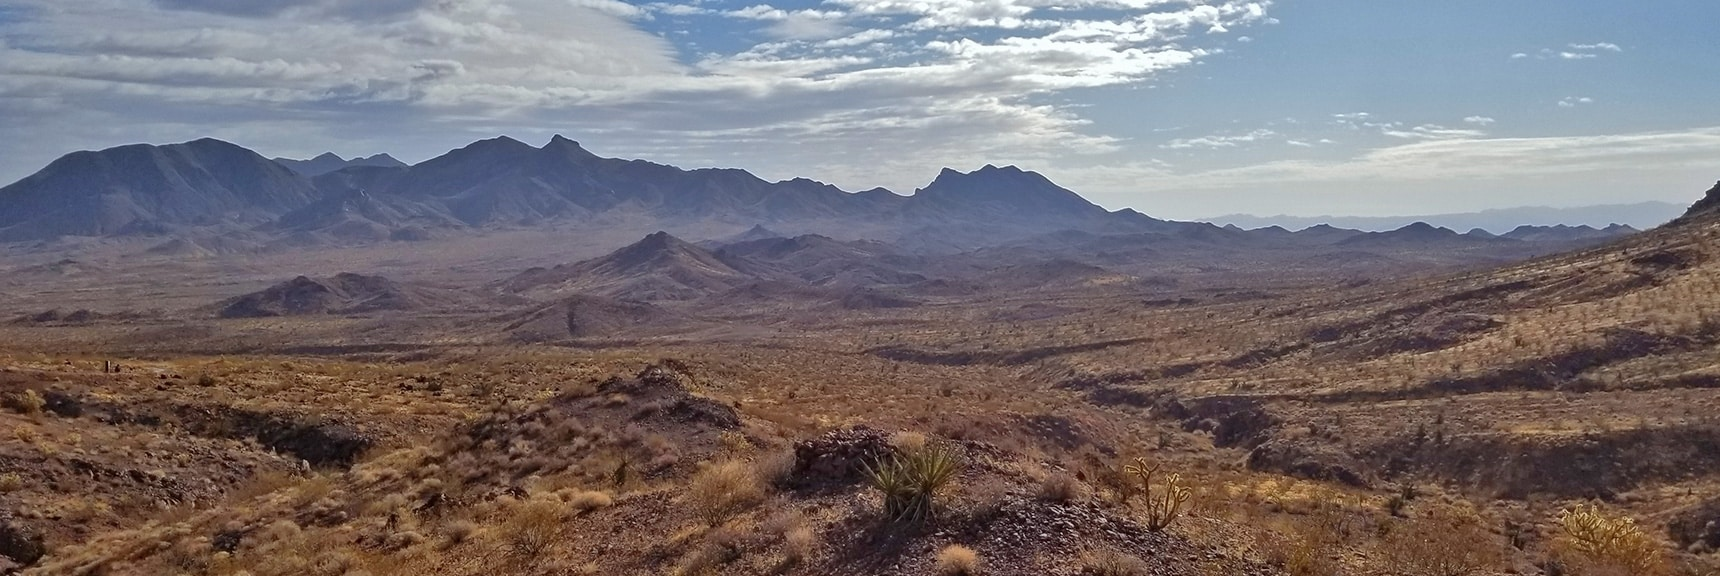 Looking East. Lake Mead is Beyond the Ridge System in View   McCullough Hills Trail in Sloan Canyon National Conservation Area, Nevada